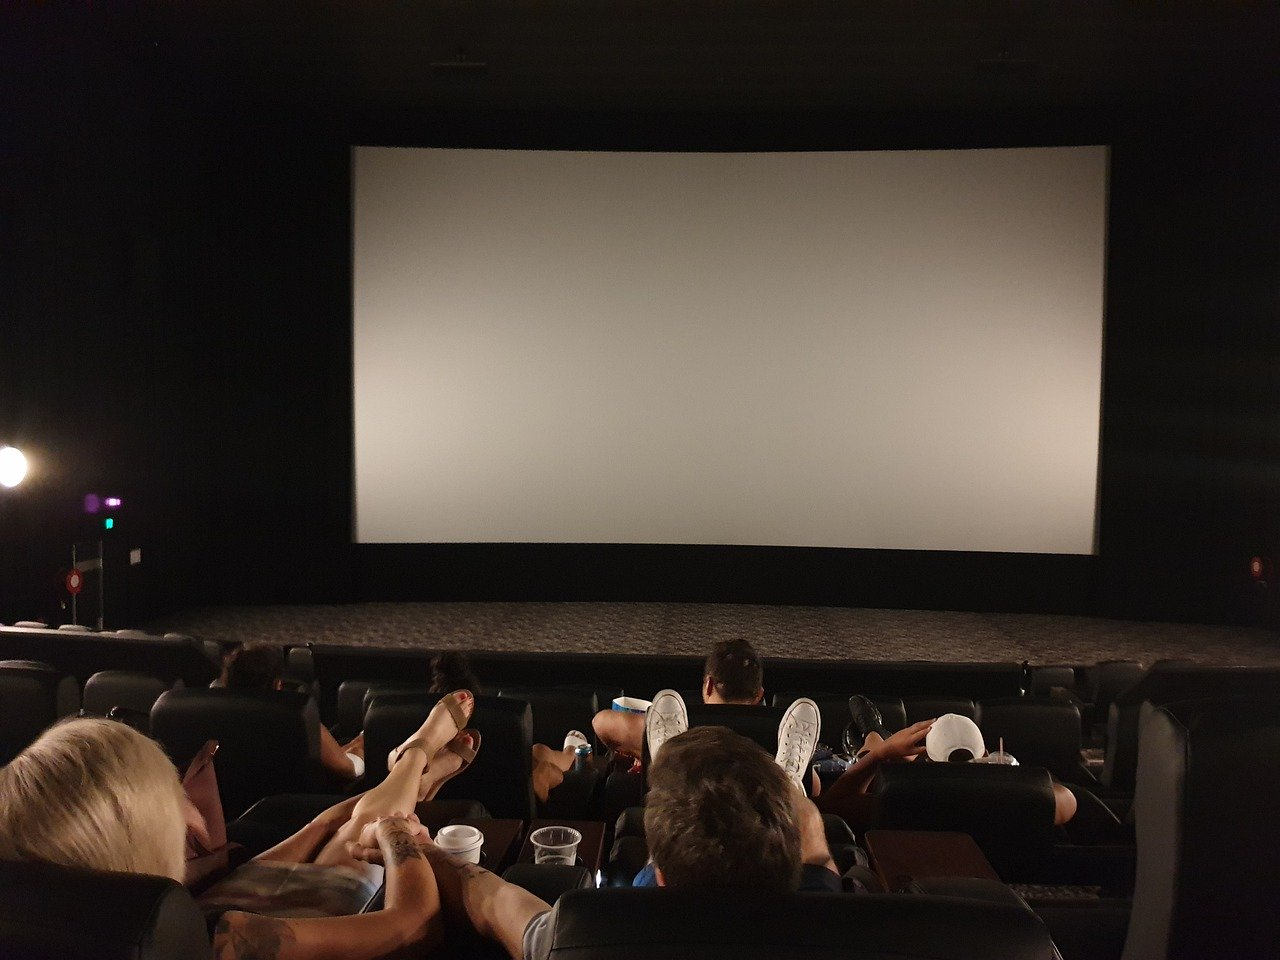 Movie screen